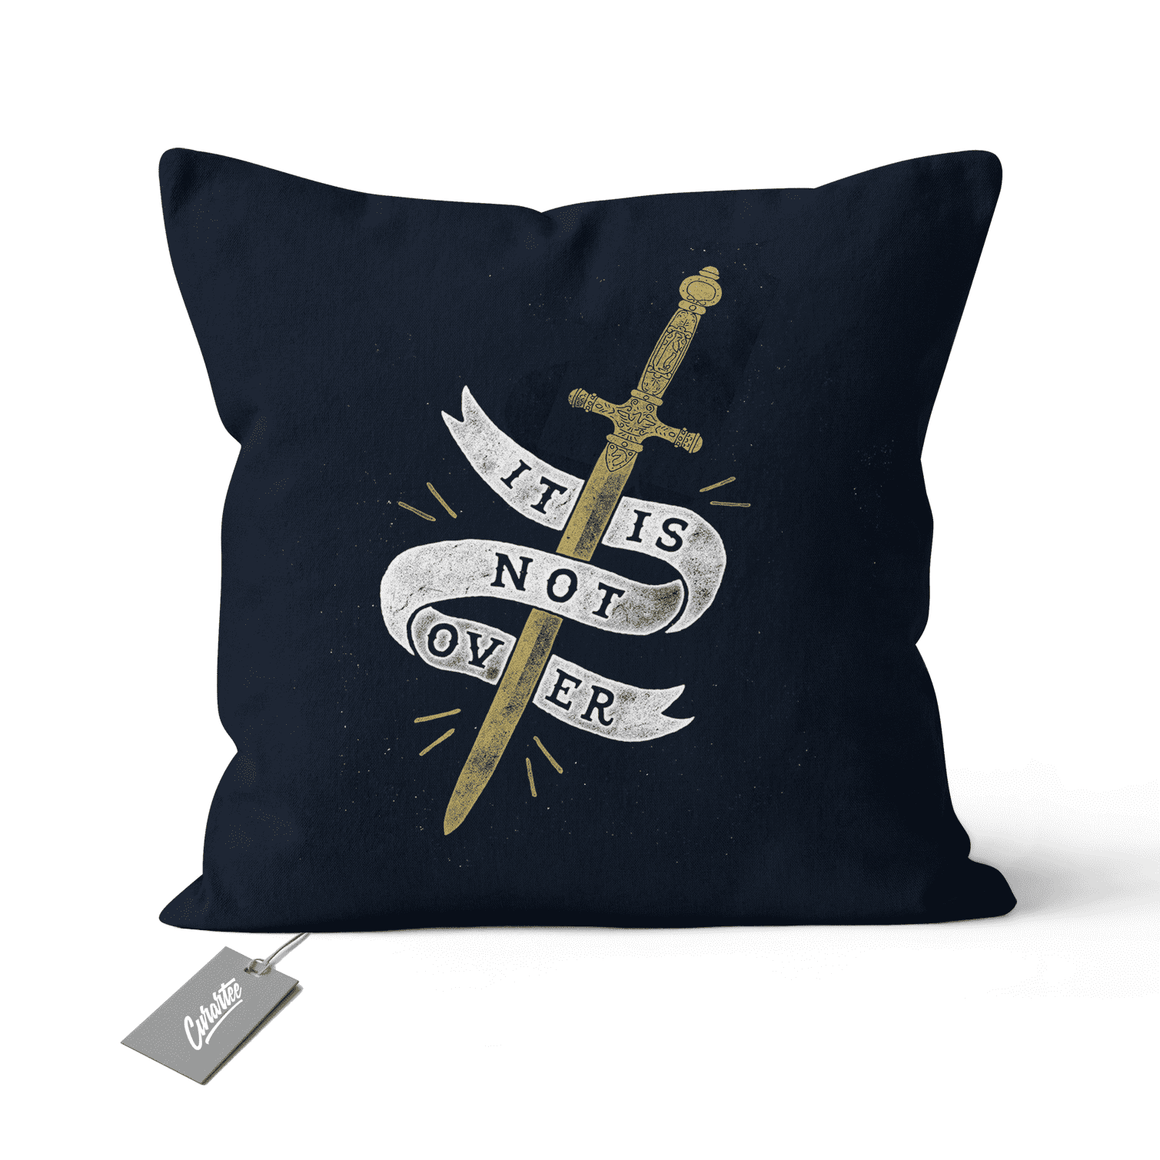 It's Not Over Cushion - Premium Artwear Curartee